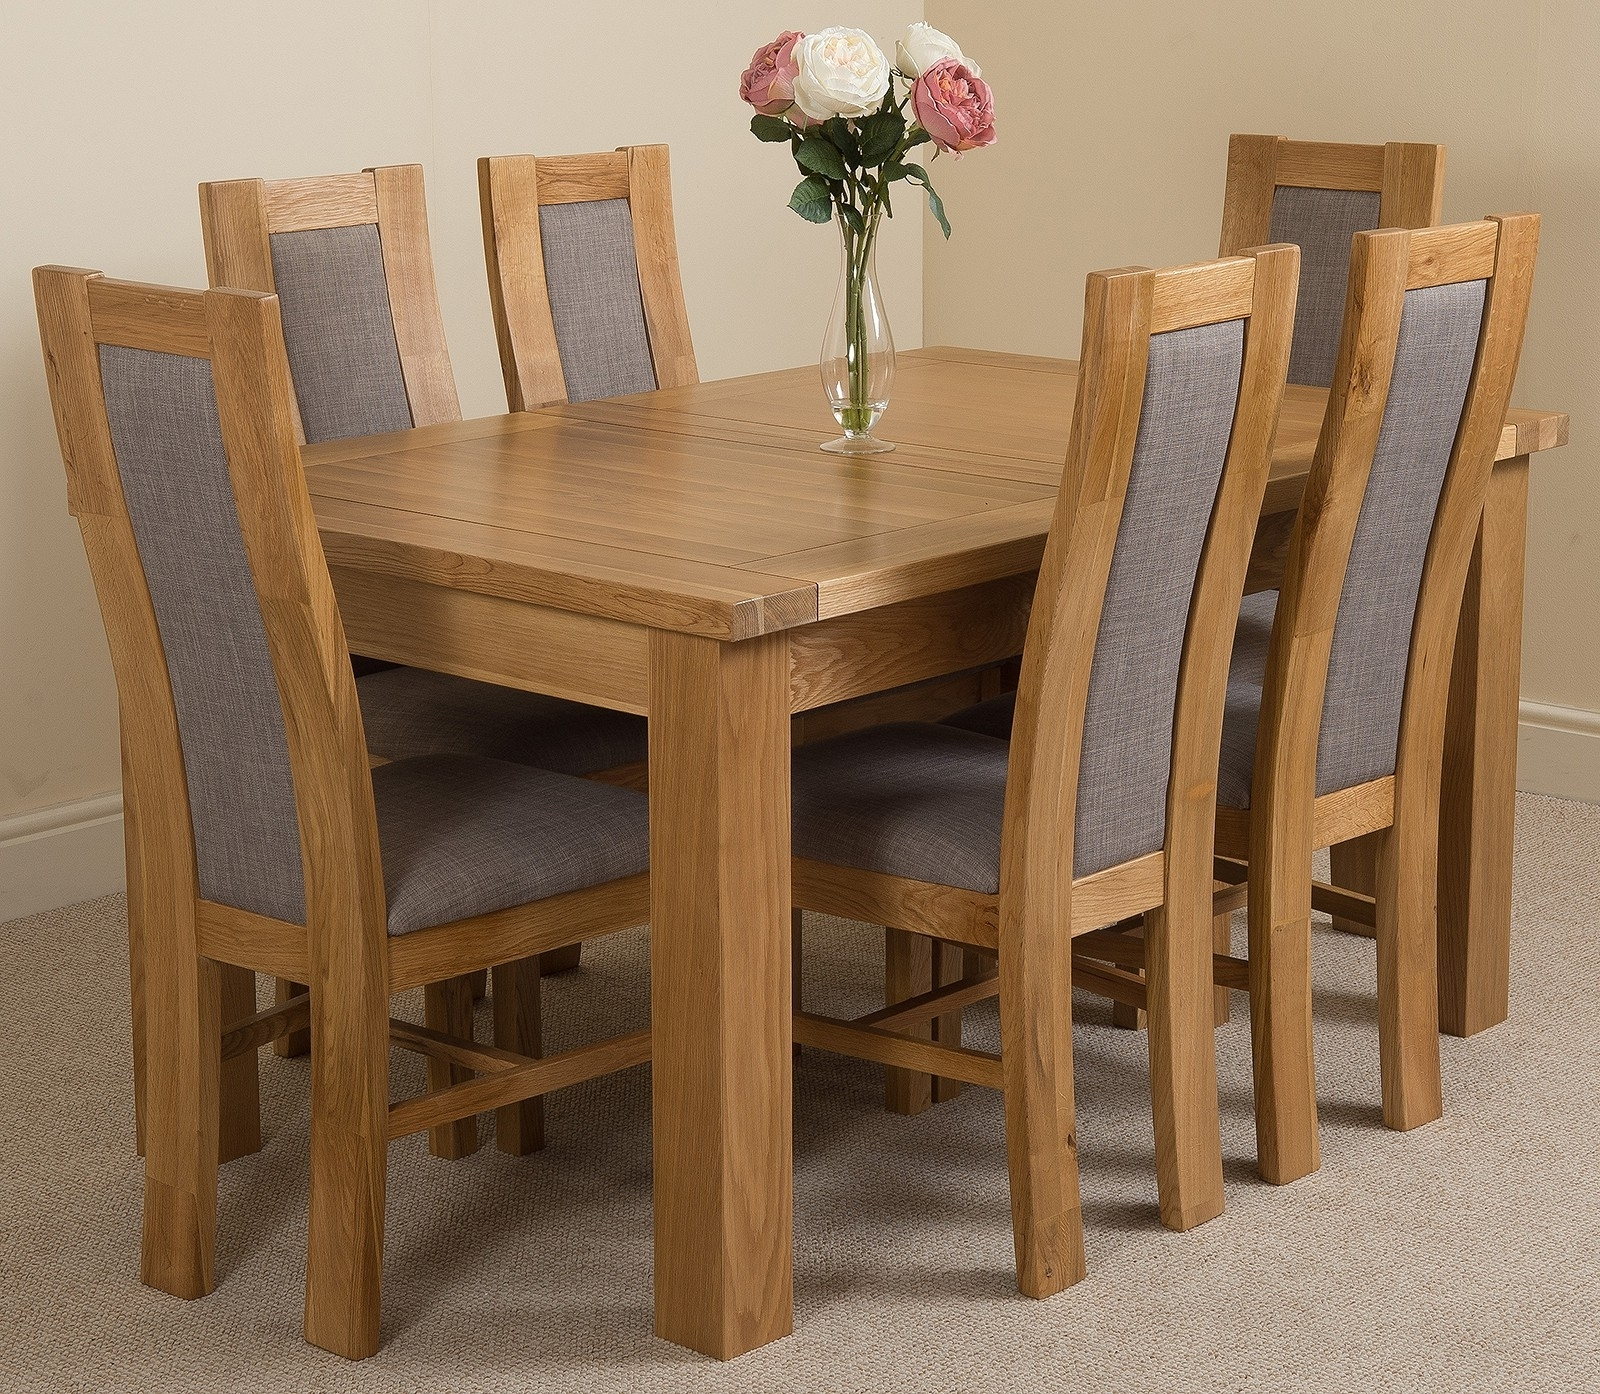 Oak Furniture King In Latest Oak Extending Dining Tables And 6 Chairs (View 10 of 25)